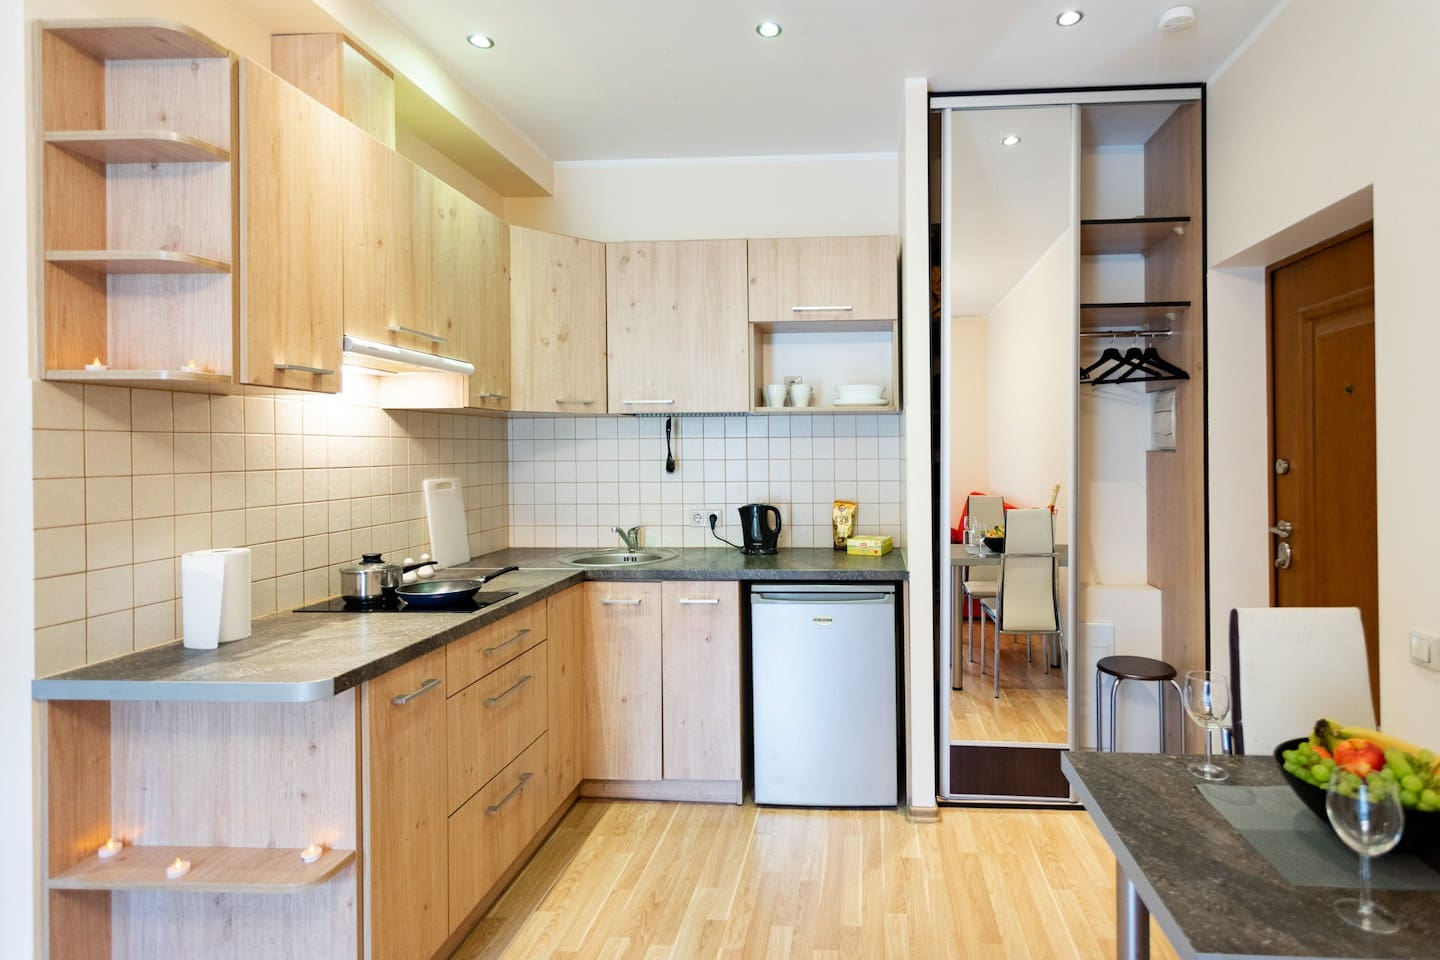 Kitchen with everything you need inside.